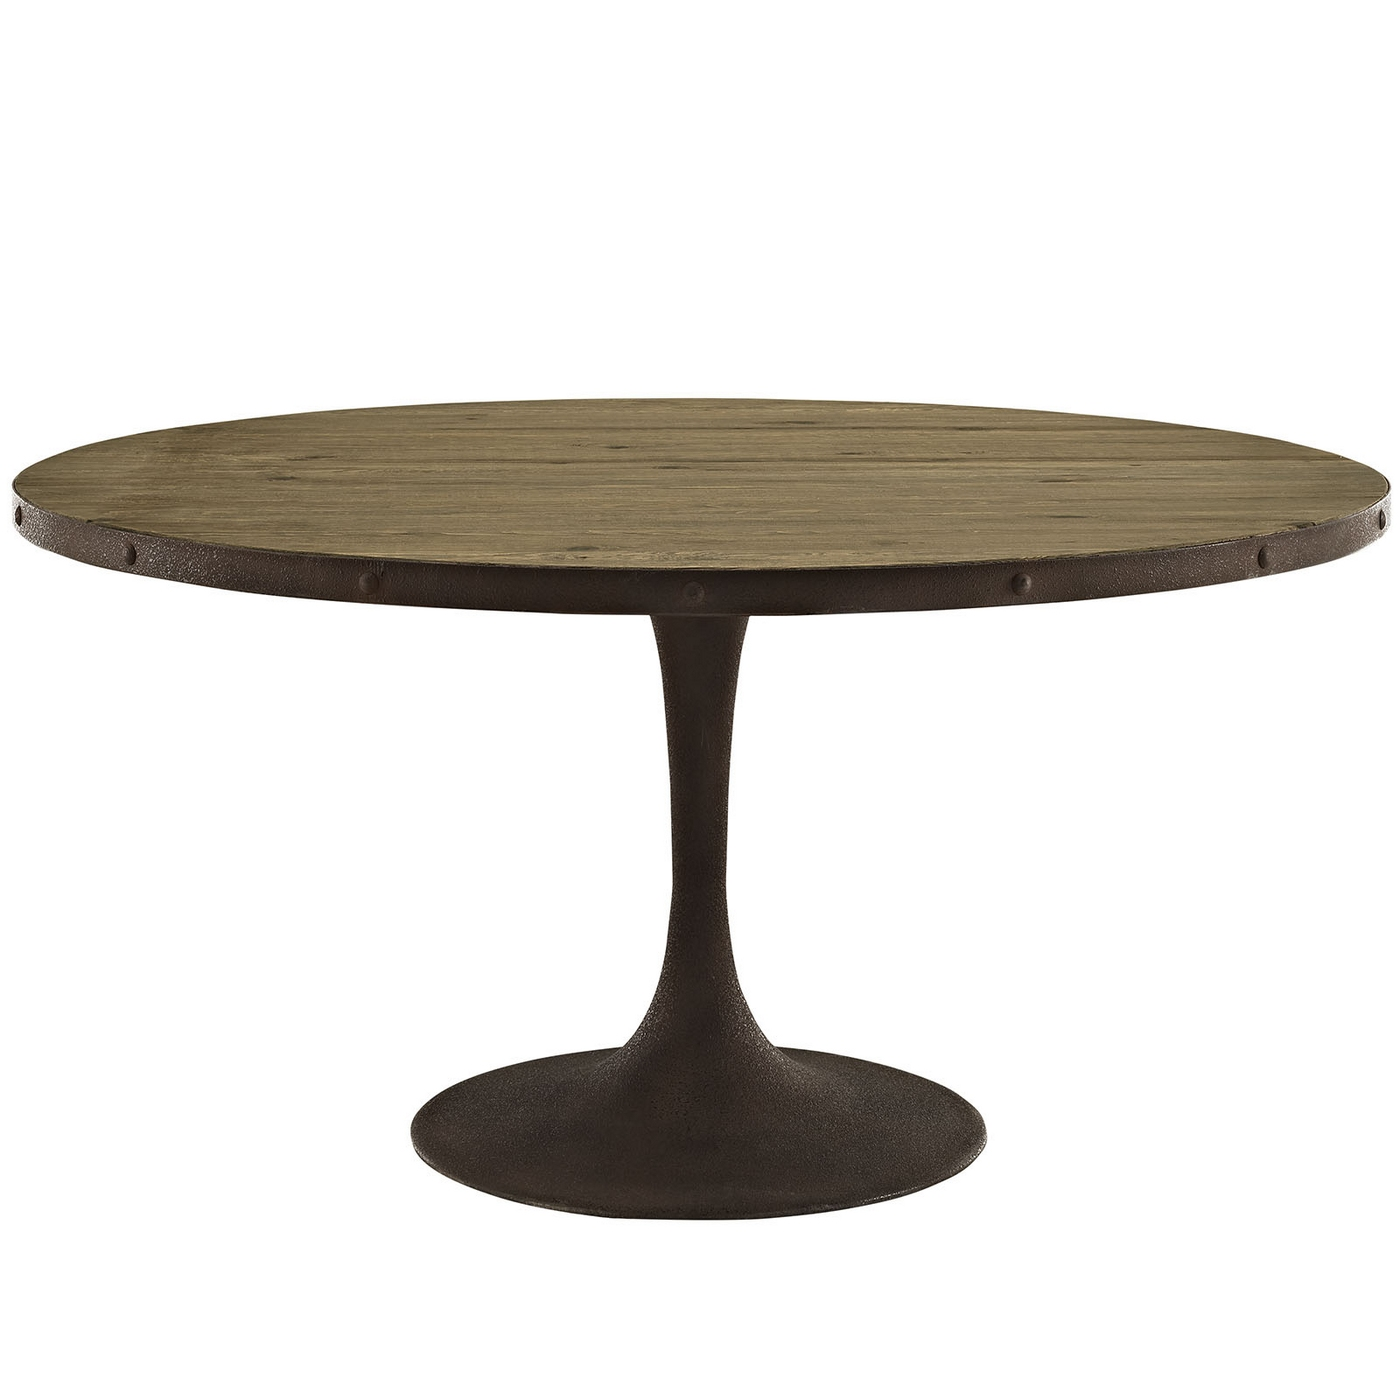 Drive Rustic 60quot Round Wood Top Dining Table W Iron  : drive rustic 60 round wood top dining table w iron pedestal base brown 2 from shopfactorydirect.com size 1400 x 1400 jpeg 243kB